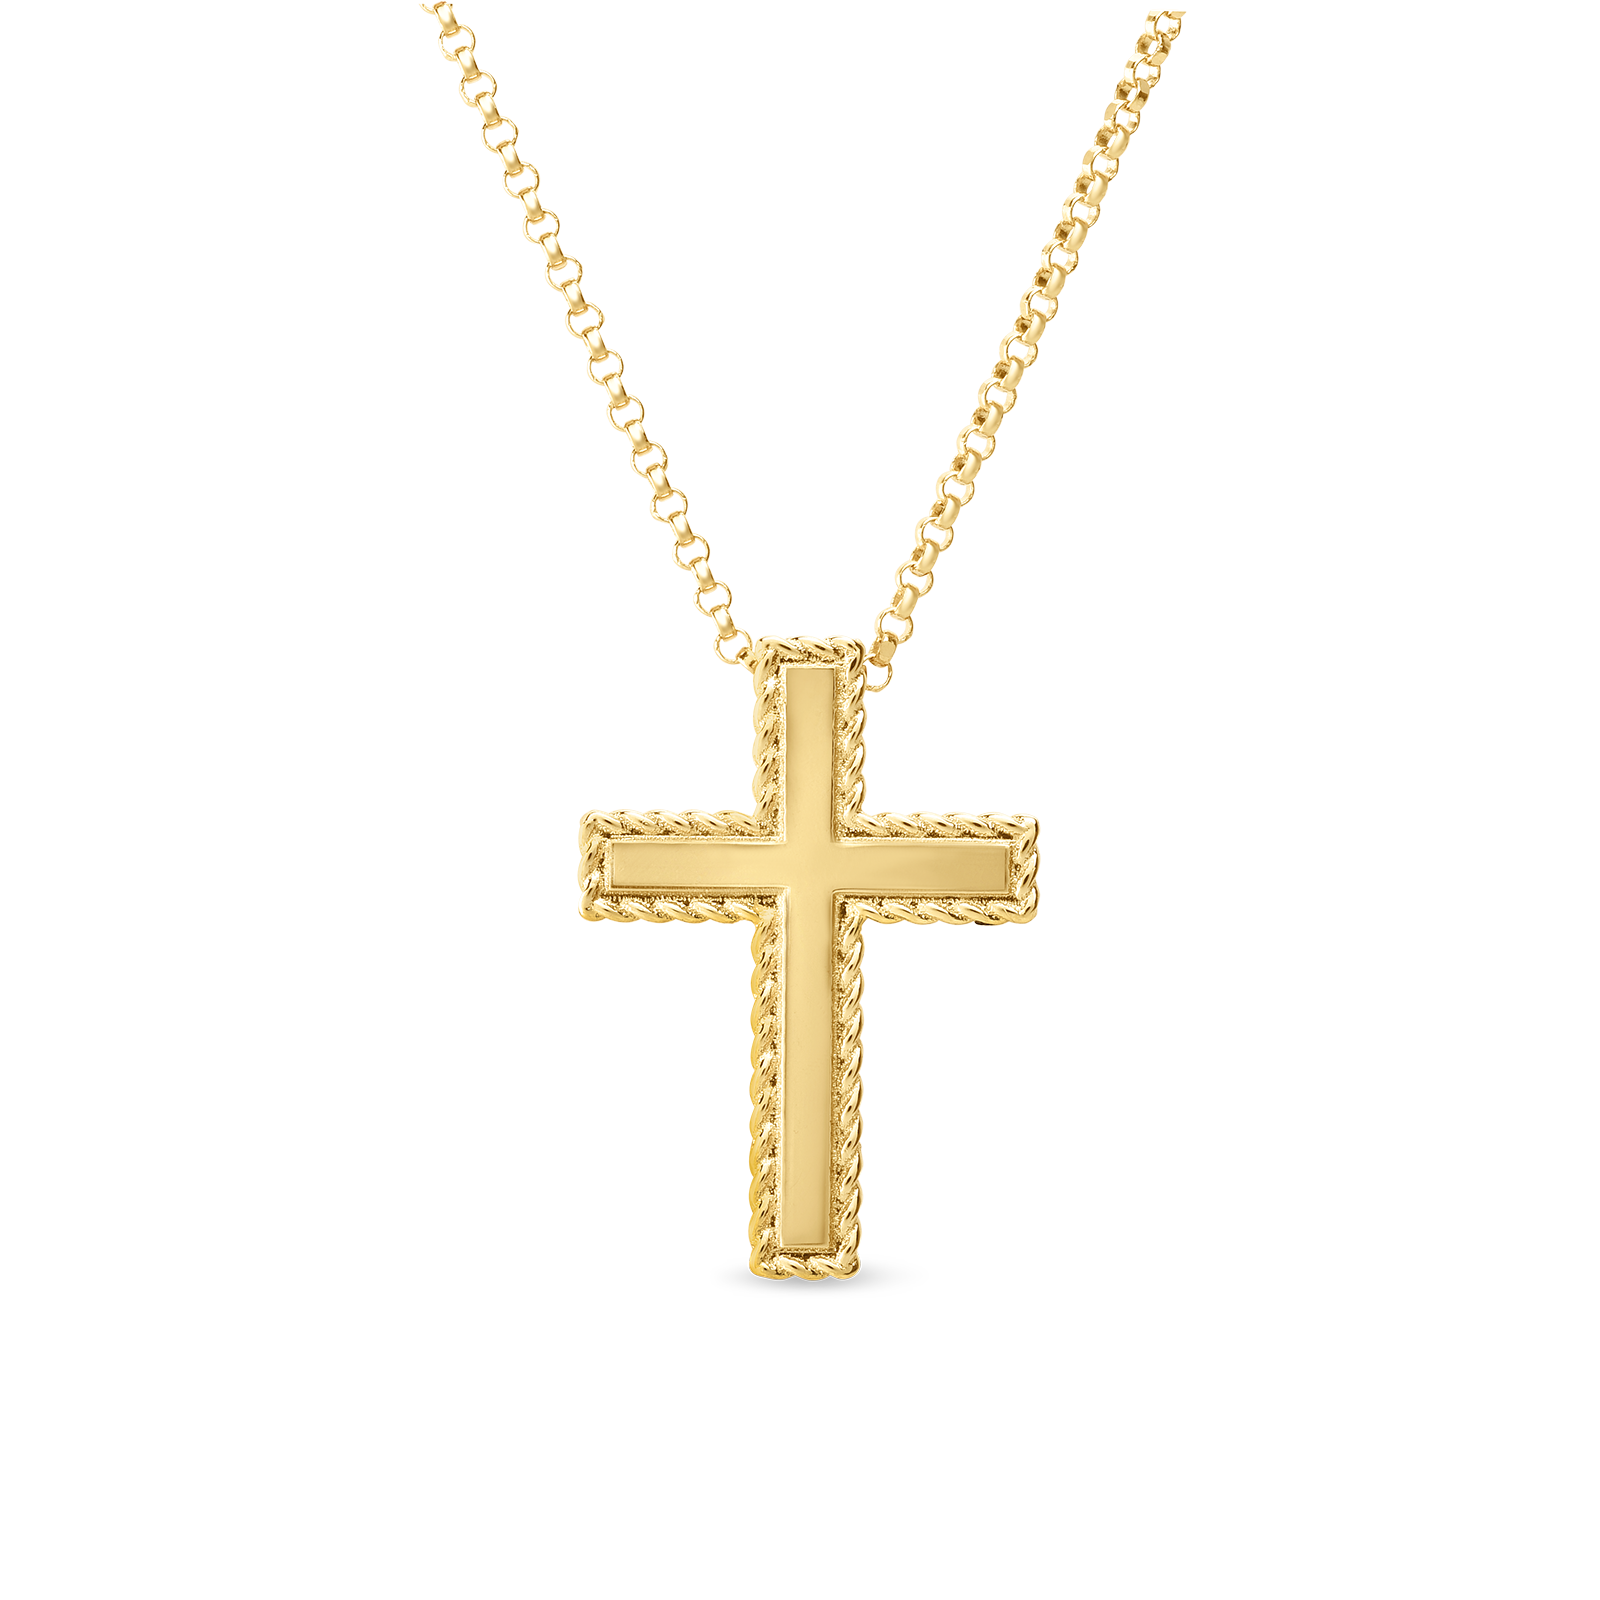 Cross necklace png. New barocco gold kcros